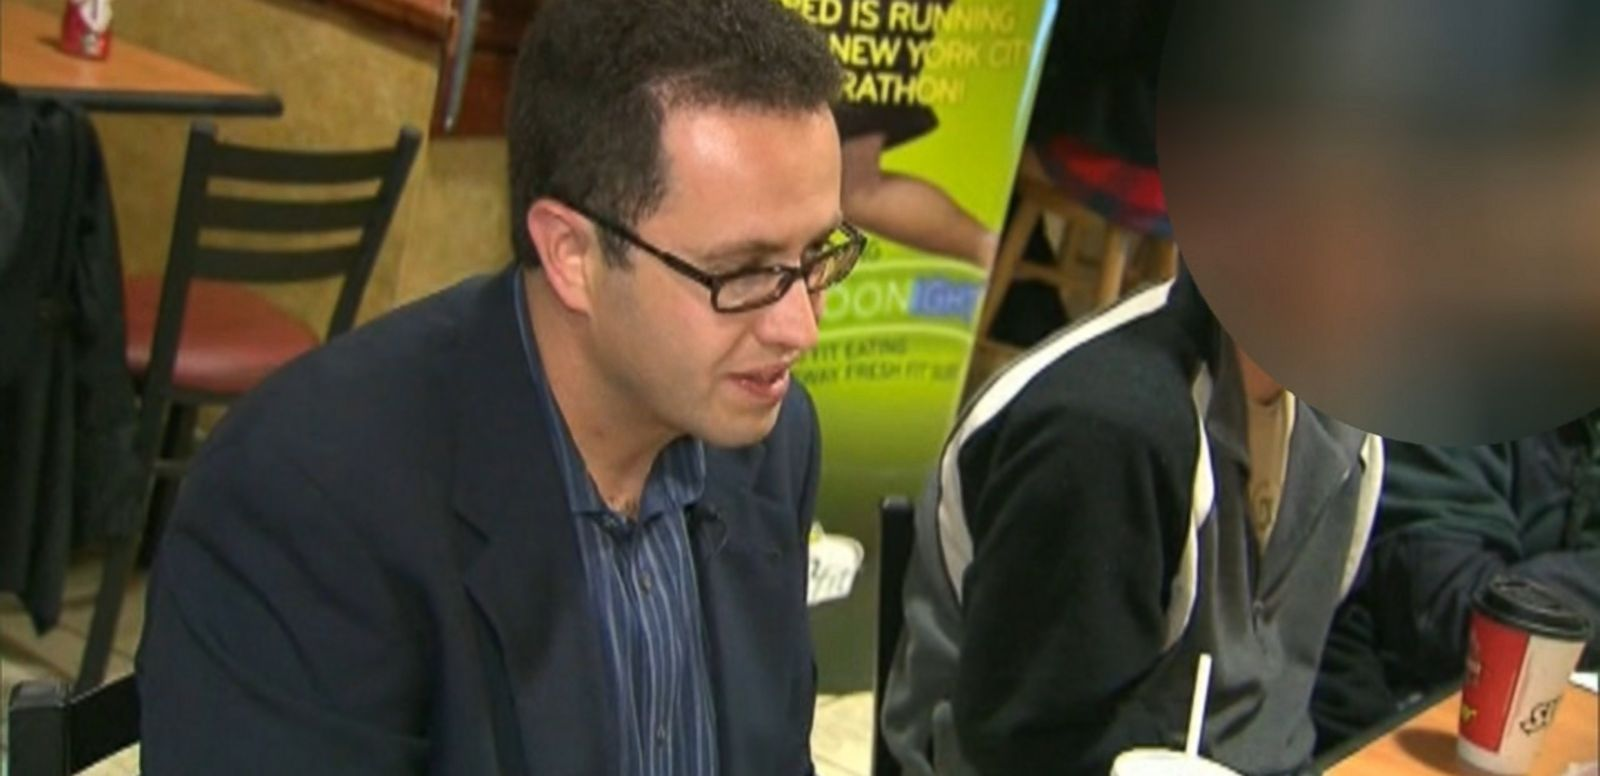 VIDEO: The FBI has raided the home of Subway spokesman Jared Fogle as part of an investigation, authorities told ABC News today.